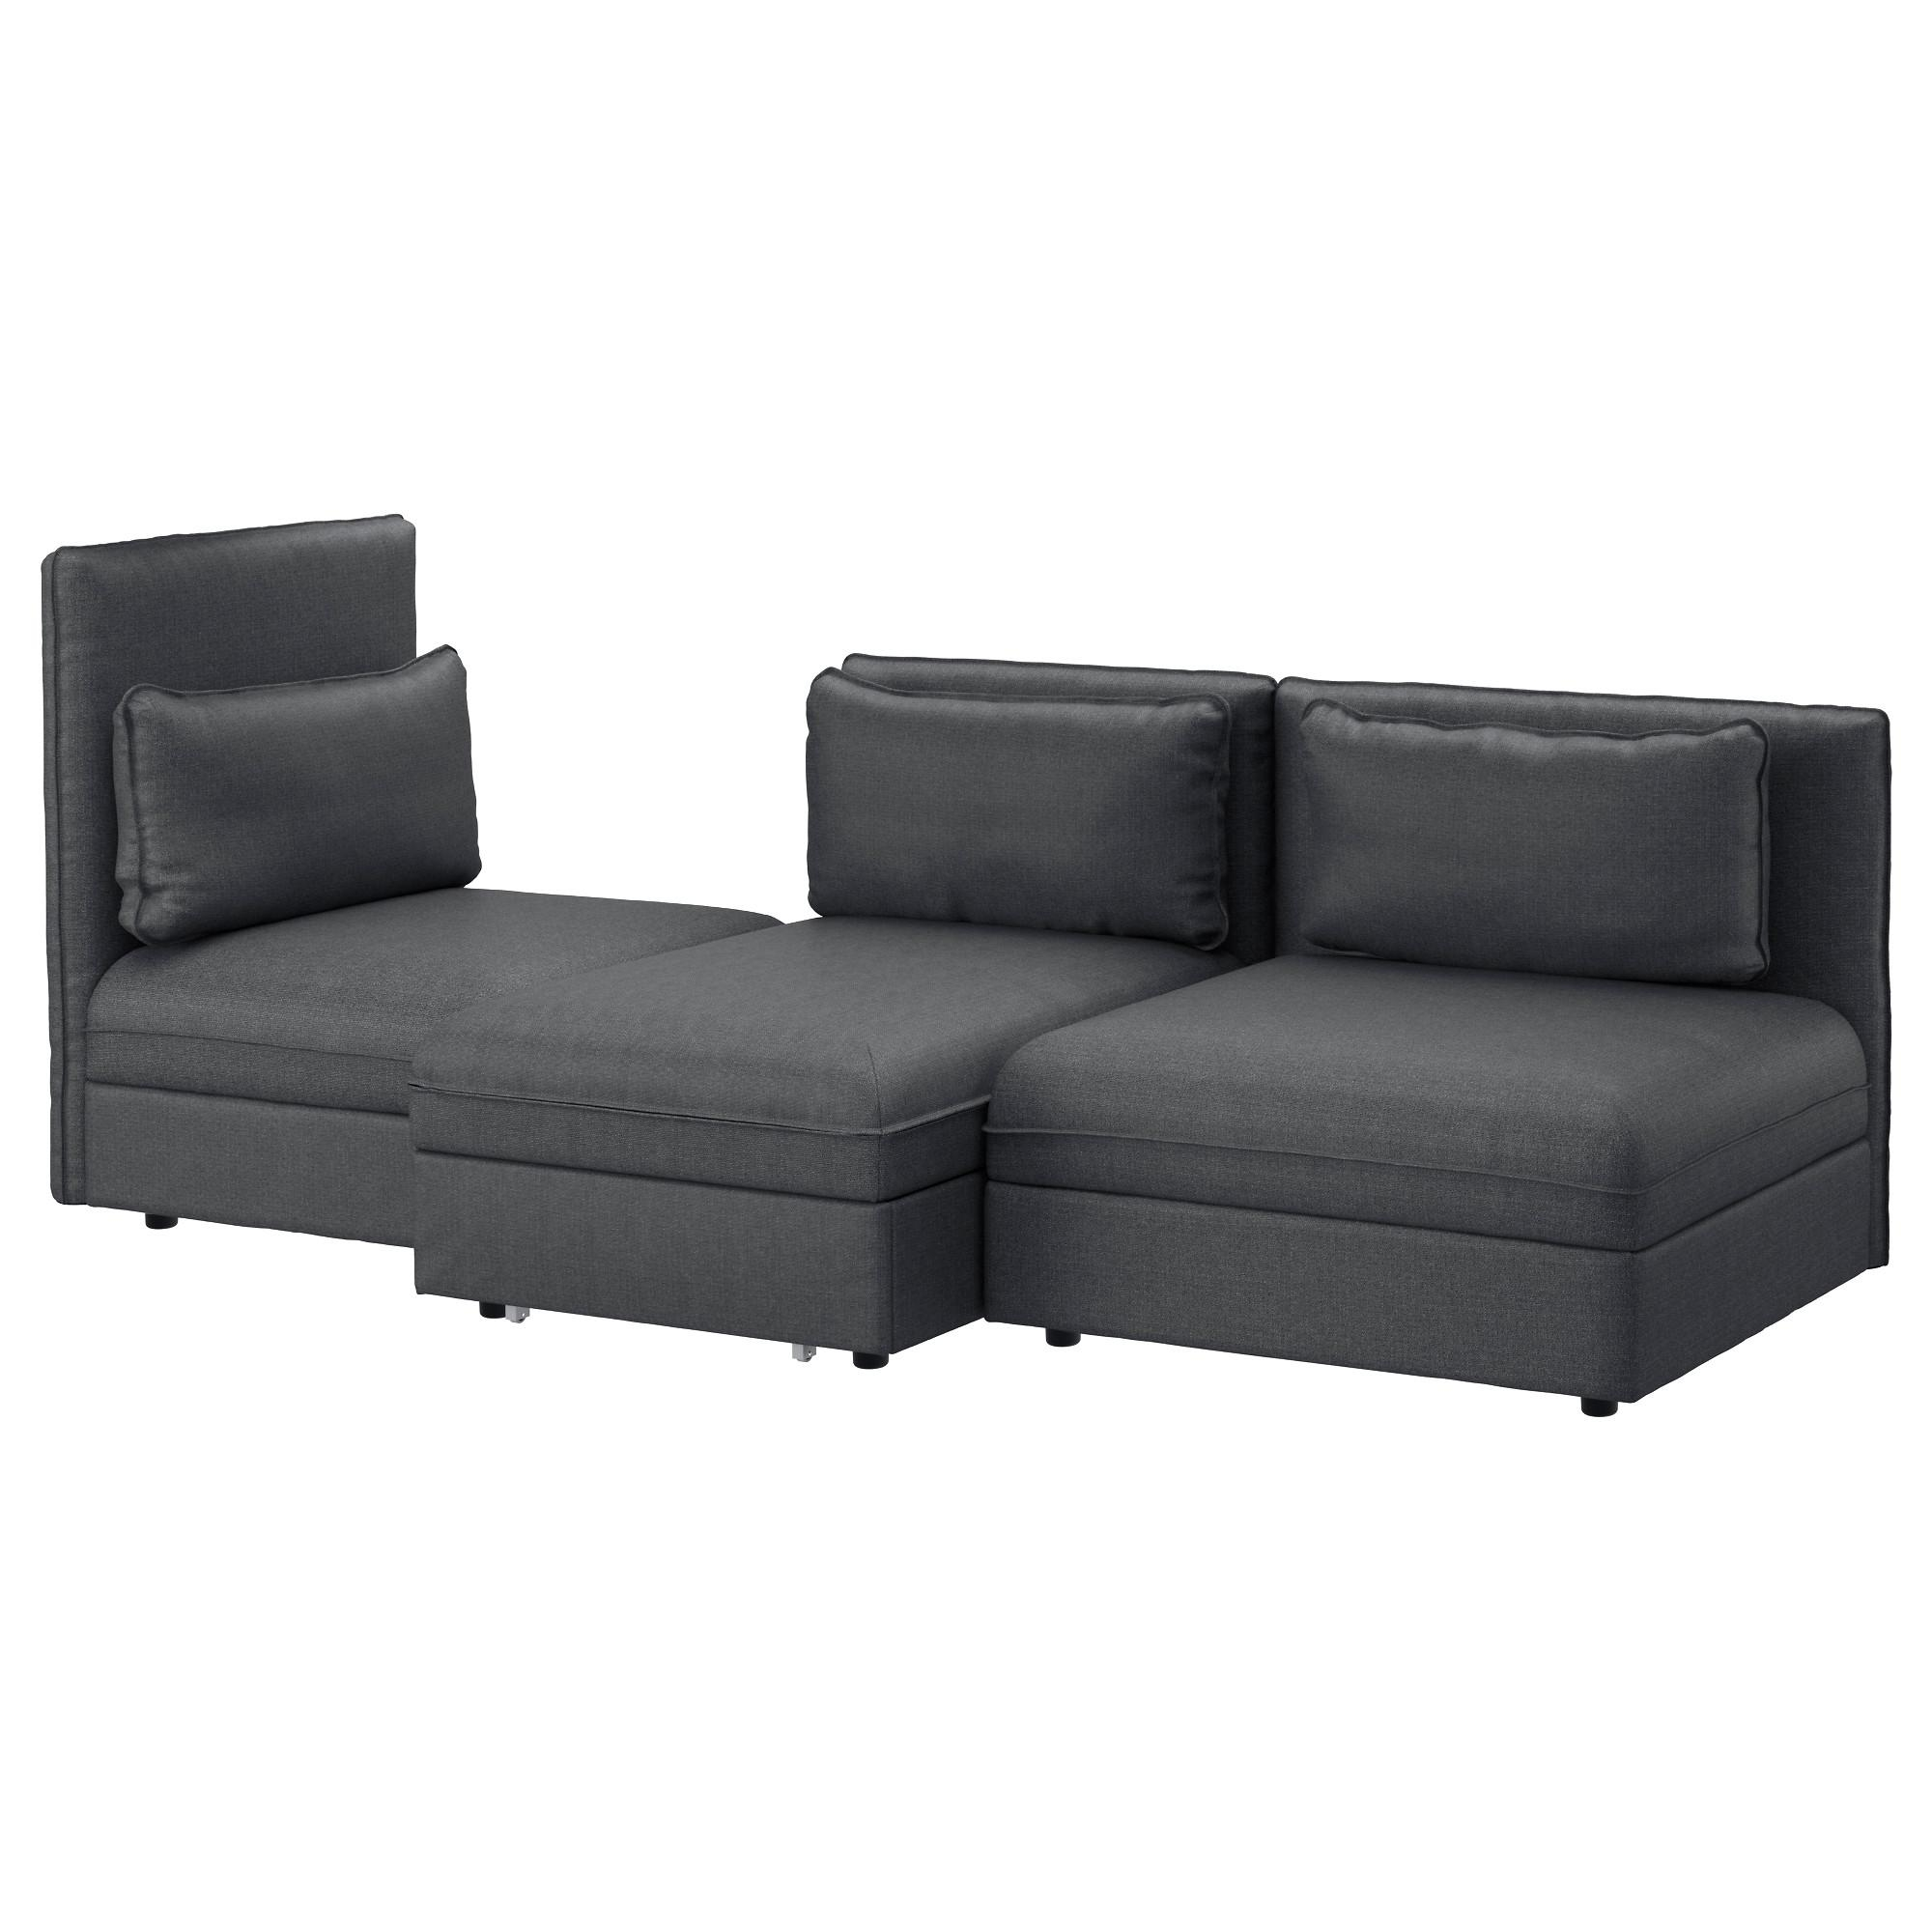 Vallentuna 3-Seat Sofa With Bed Hillared Dark Grey - Ikea with regard to Sofas With Beds